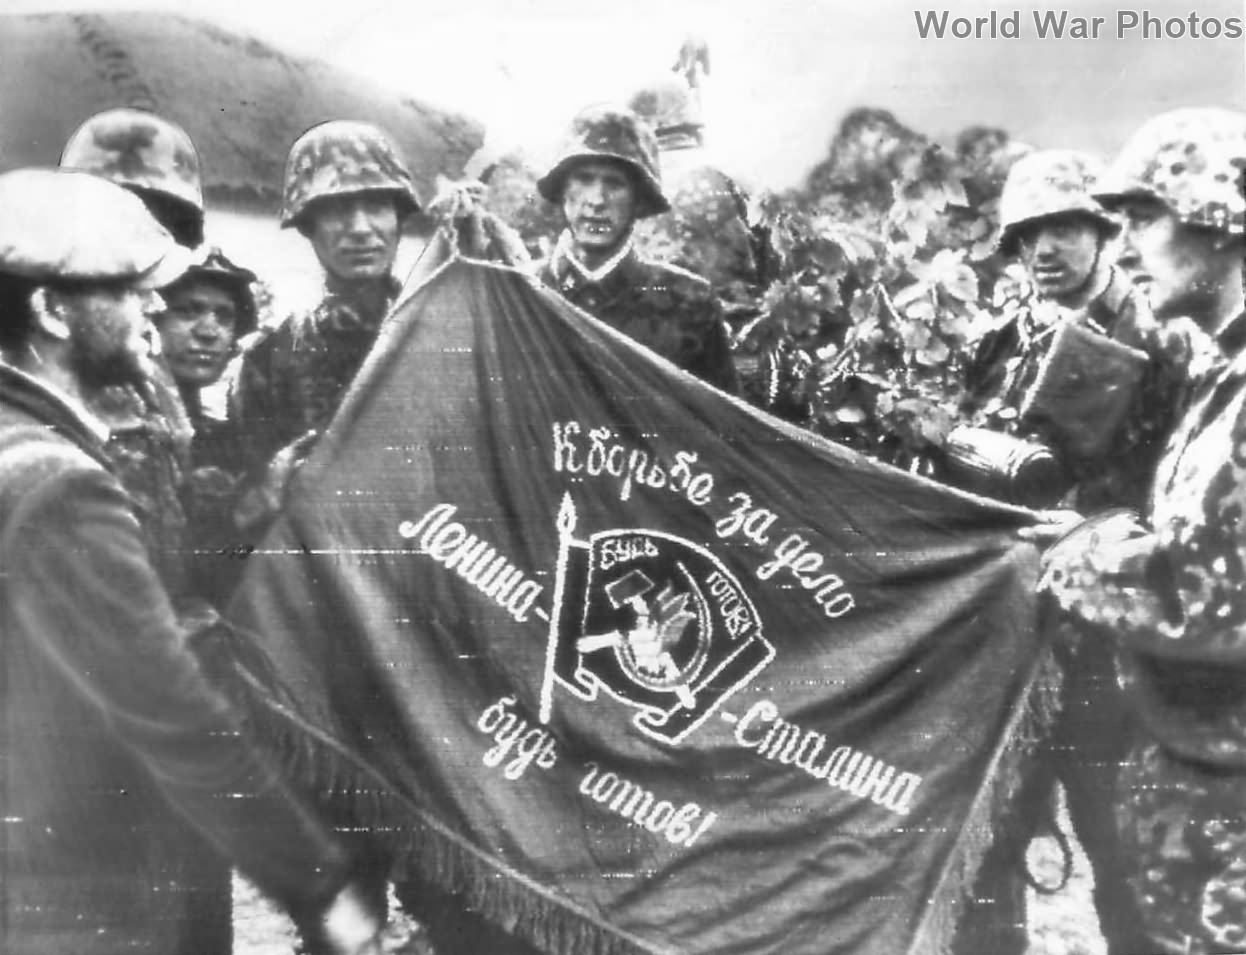 German soldiers of the 1st SS-Panzer Division Leibstandarte